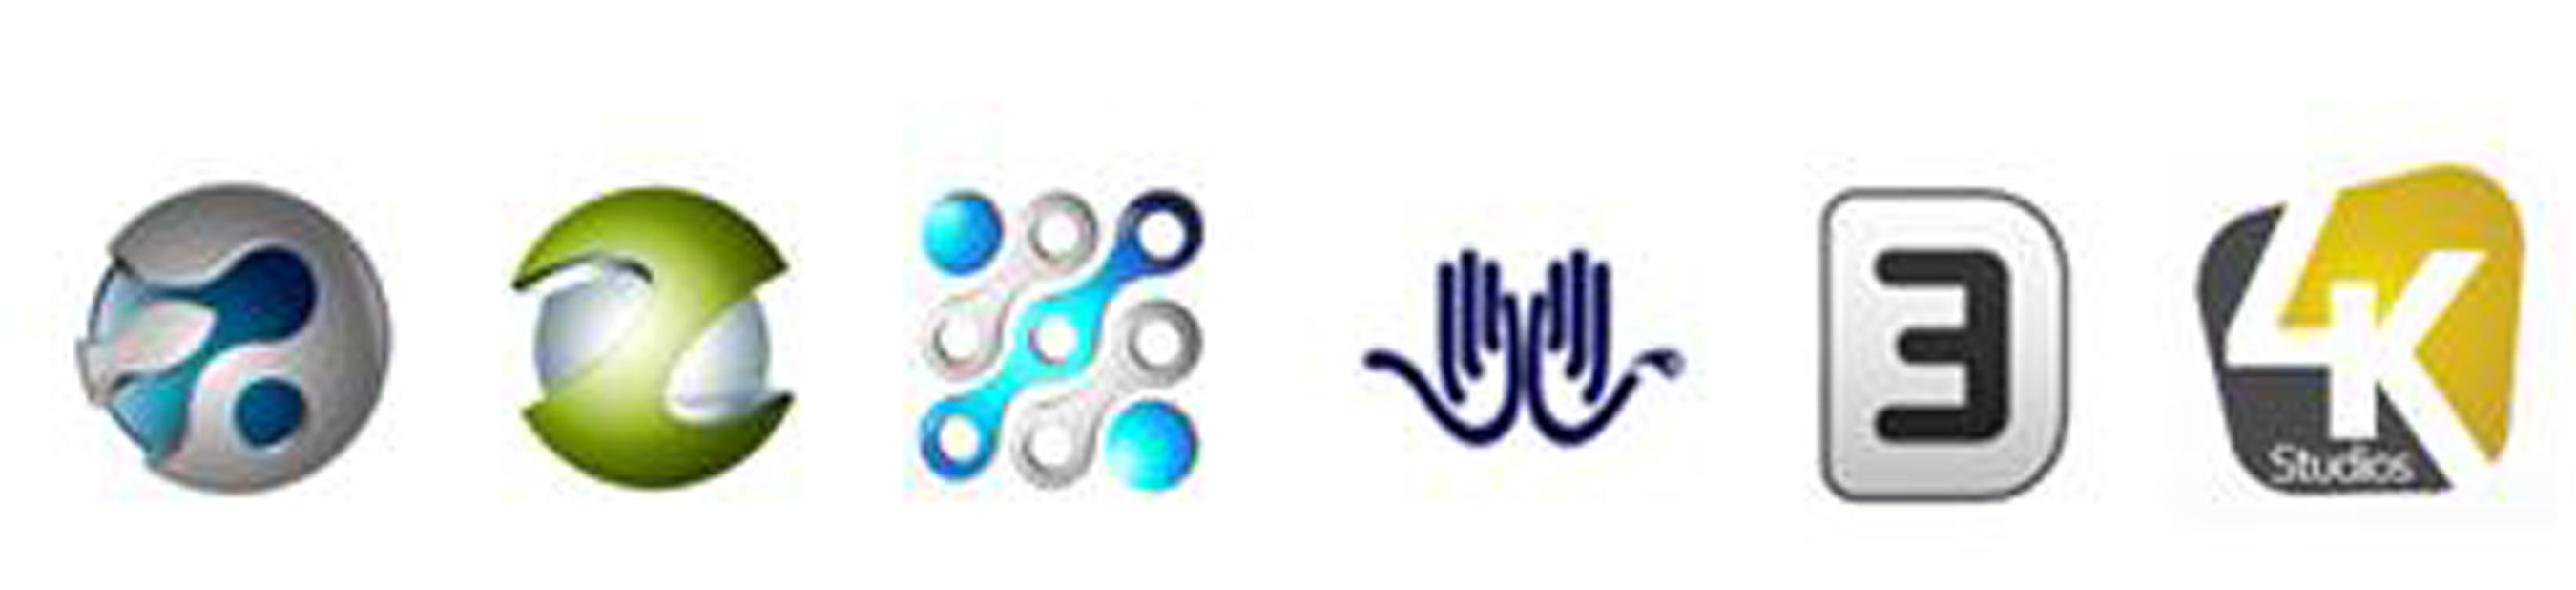 NanoTech Entertainment's six technology business units focus on 3D, Gaming, Media & IPTV, Mobile Apps, and Manufacturing.